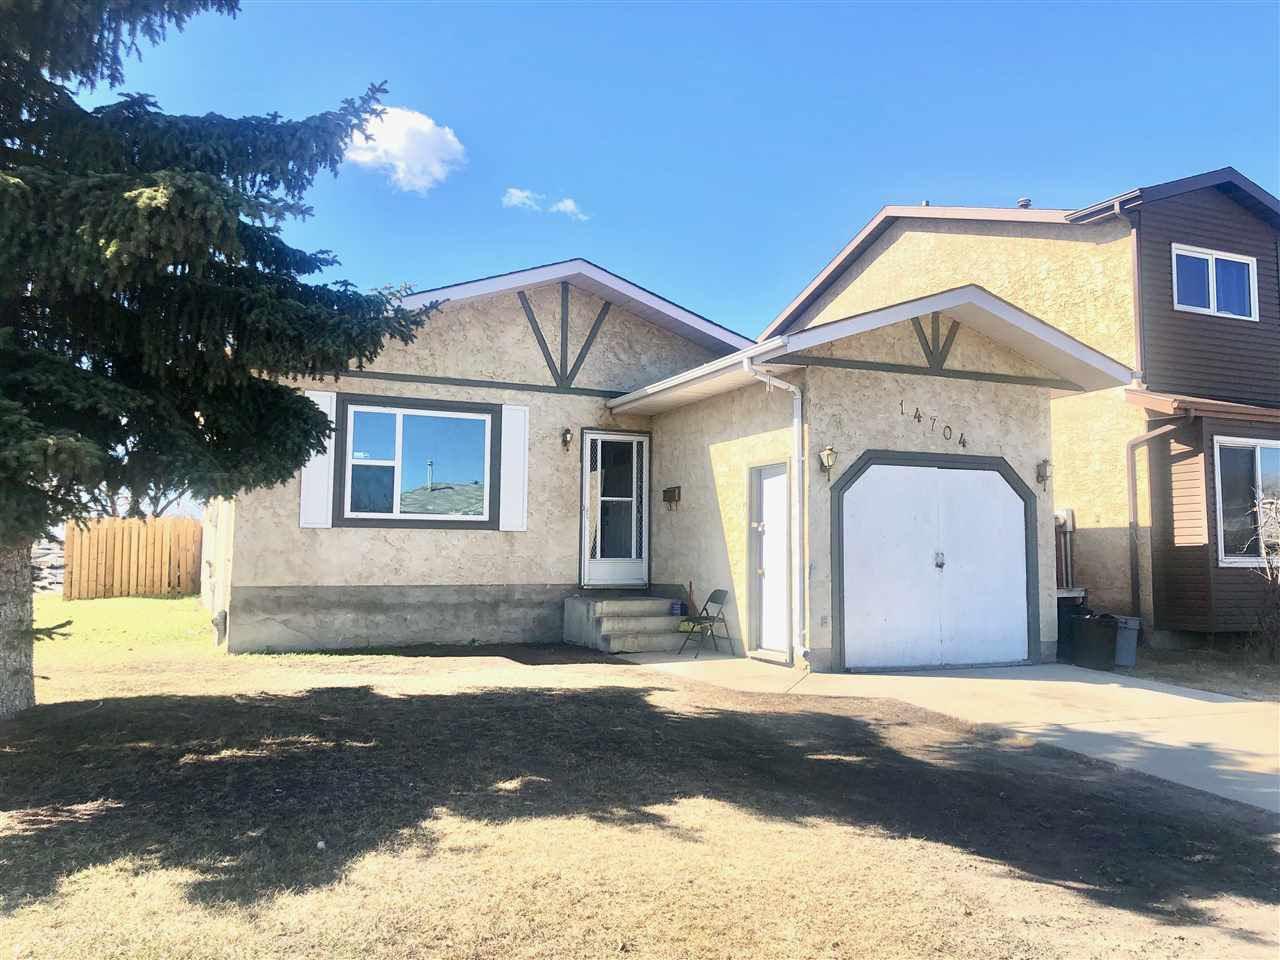 Main Photo: 14704 33 Street in Edmonton: Zone 35 House for sale : MLS®# E4145164